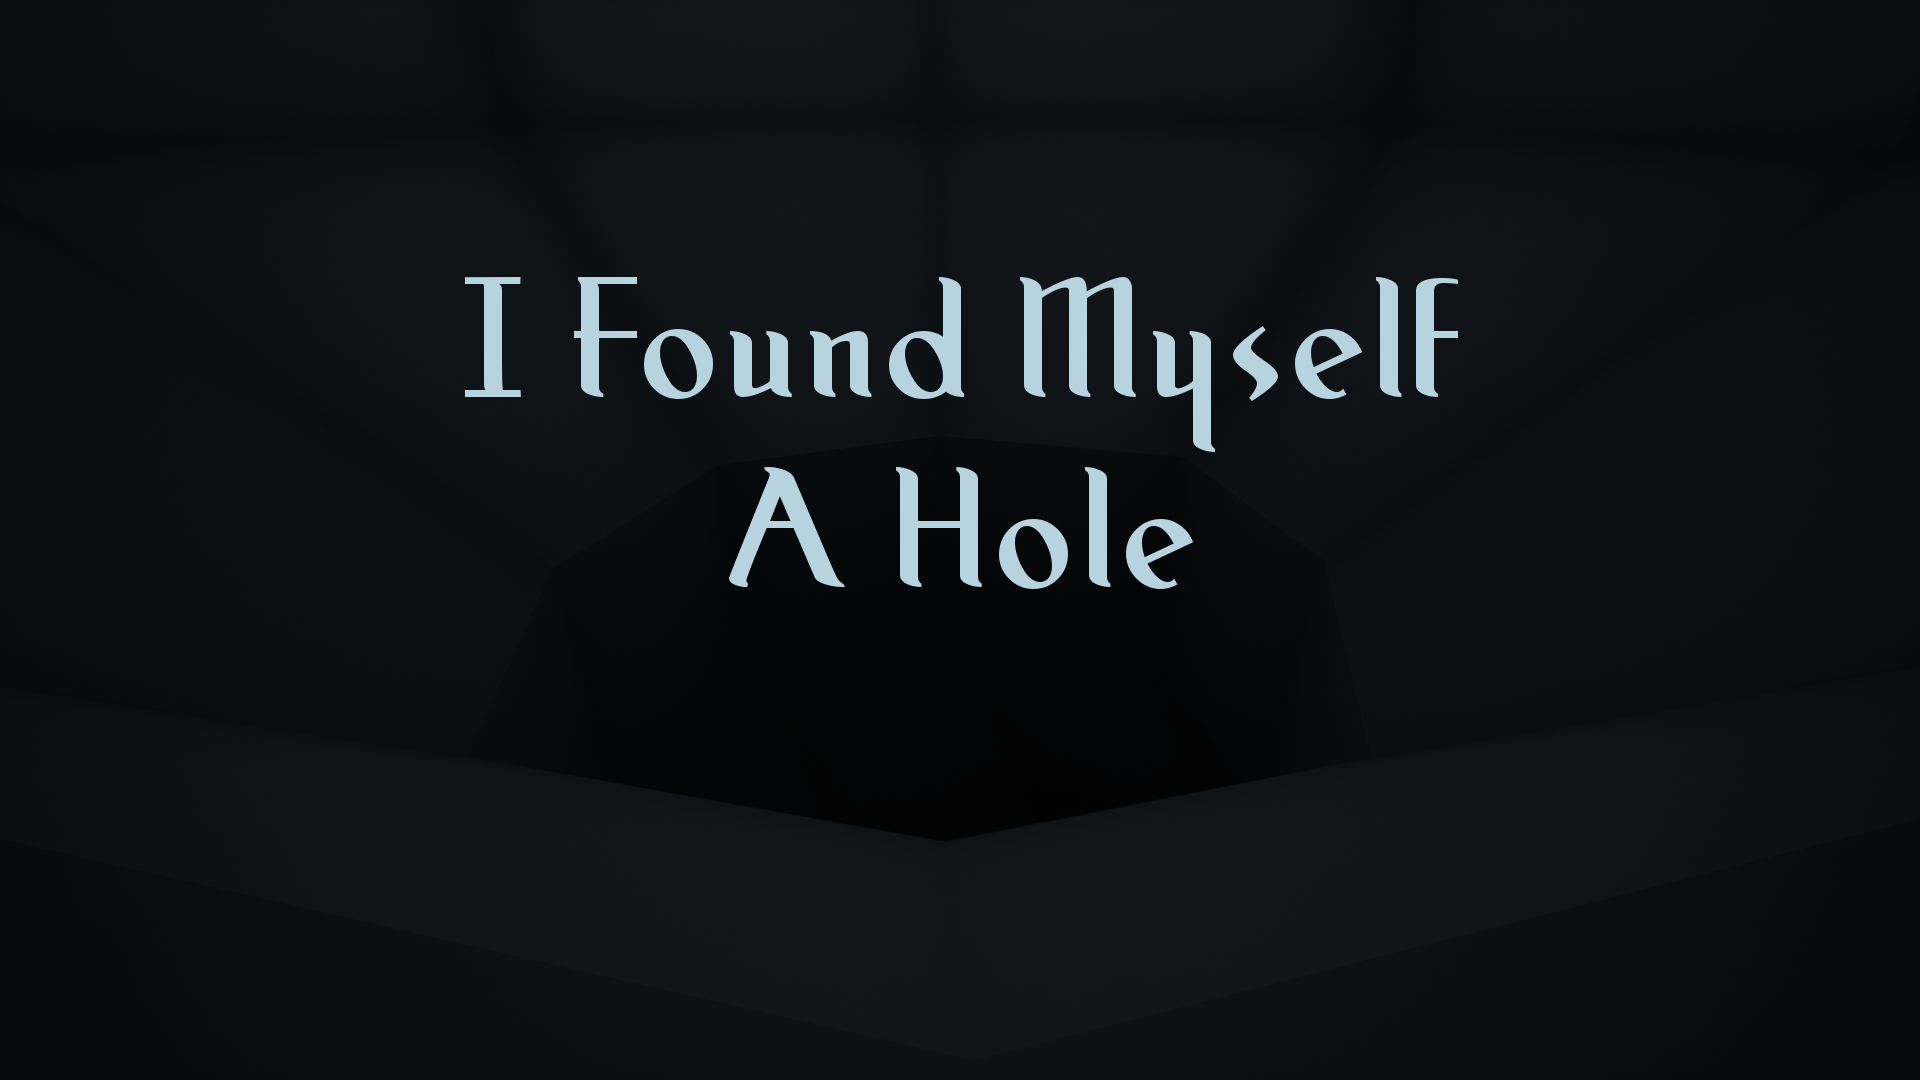 I Found Myself A Hole